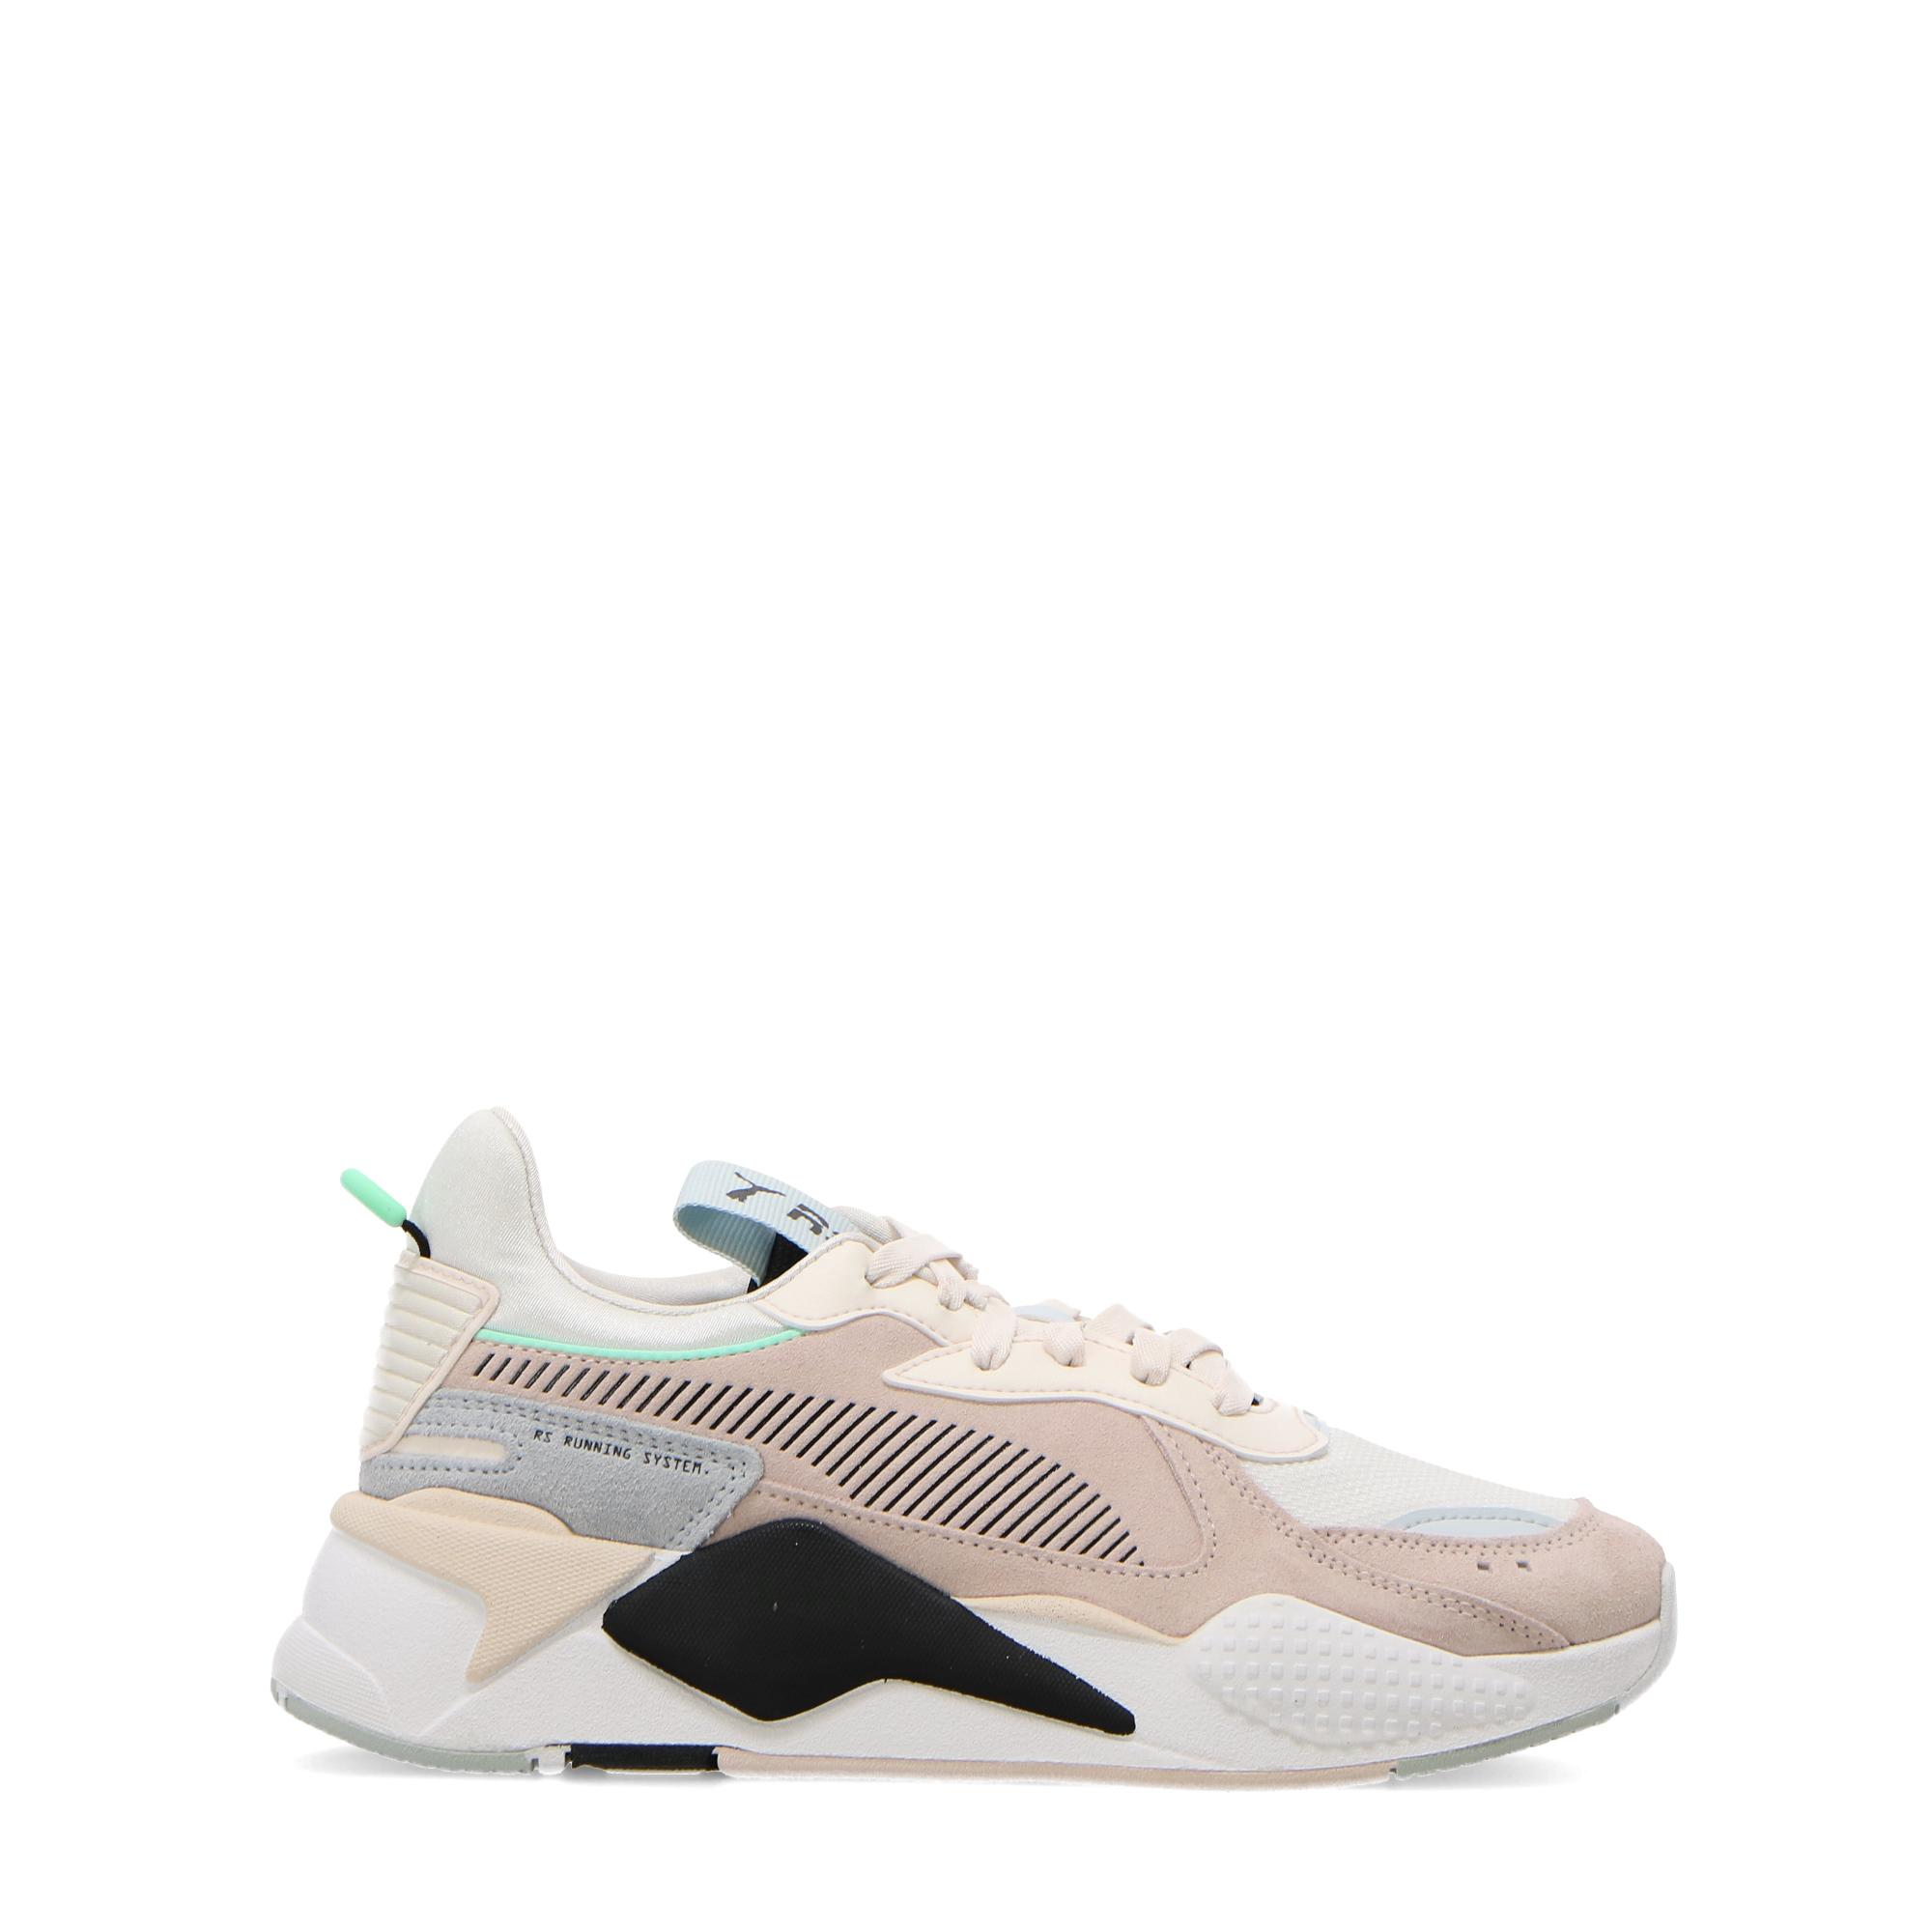 Sneakers lifestyle puma donna | Treesse